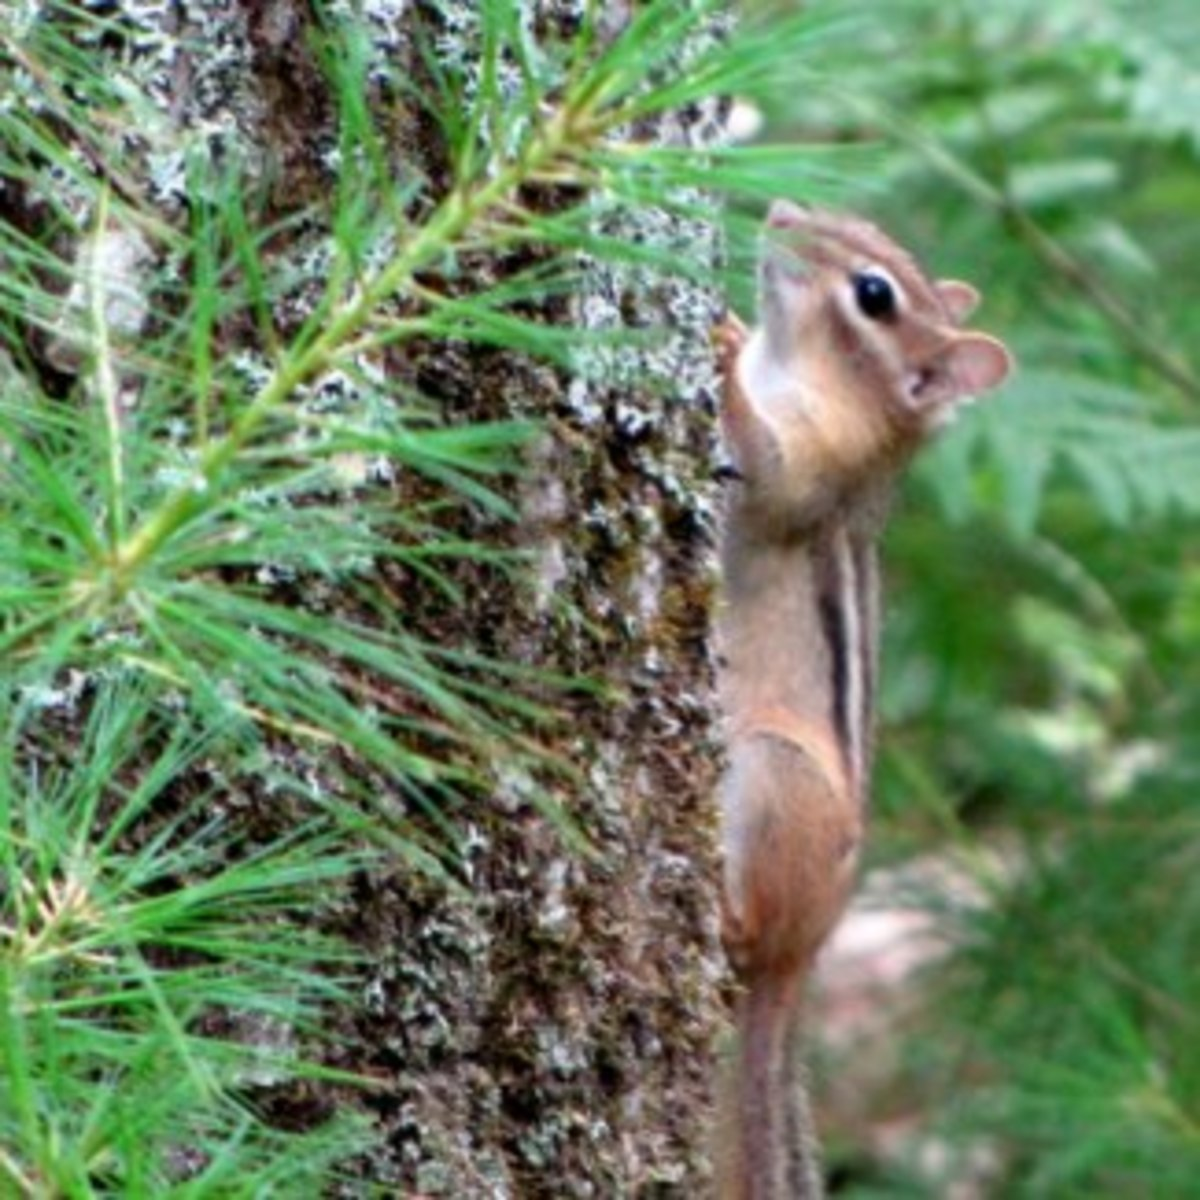 Chipmunk climbing a tree.